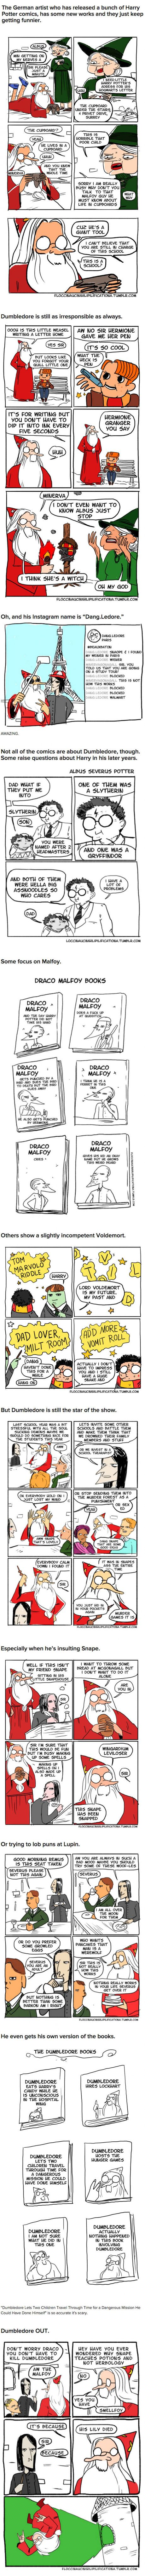 These Harry Potter Comics Prove That Dumbledore Was Totally Irresponsible!